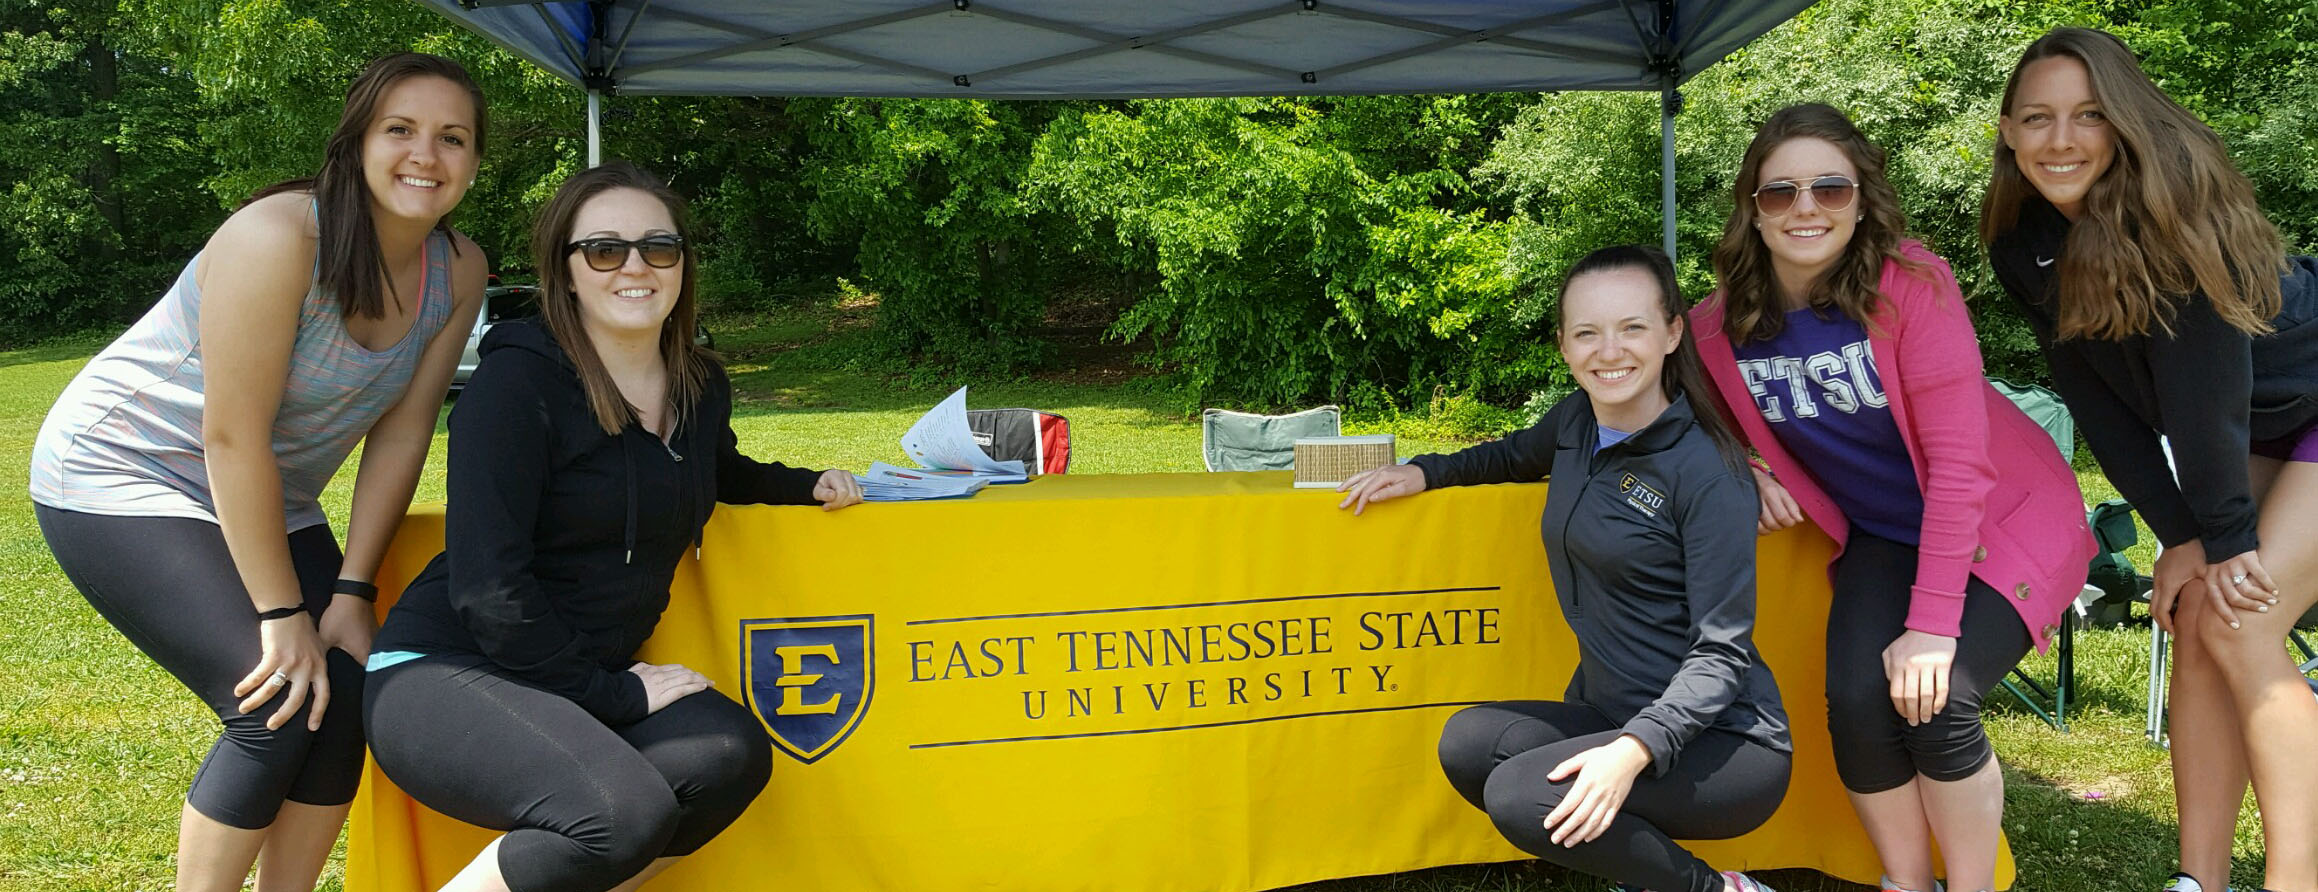 students posing at an ETSU booth